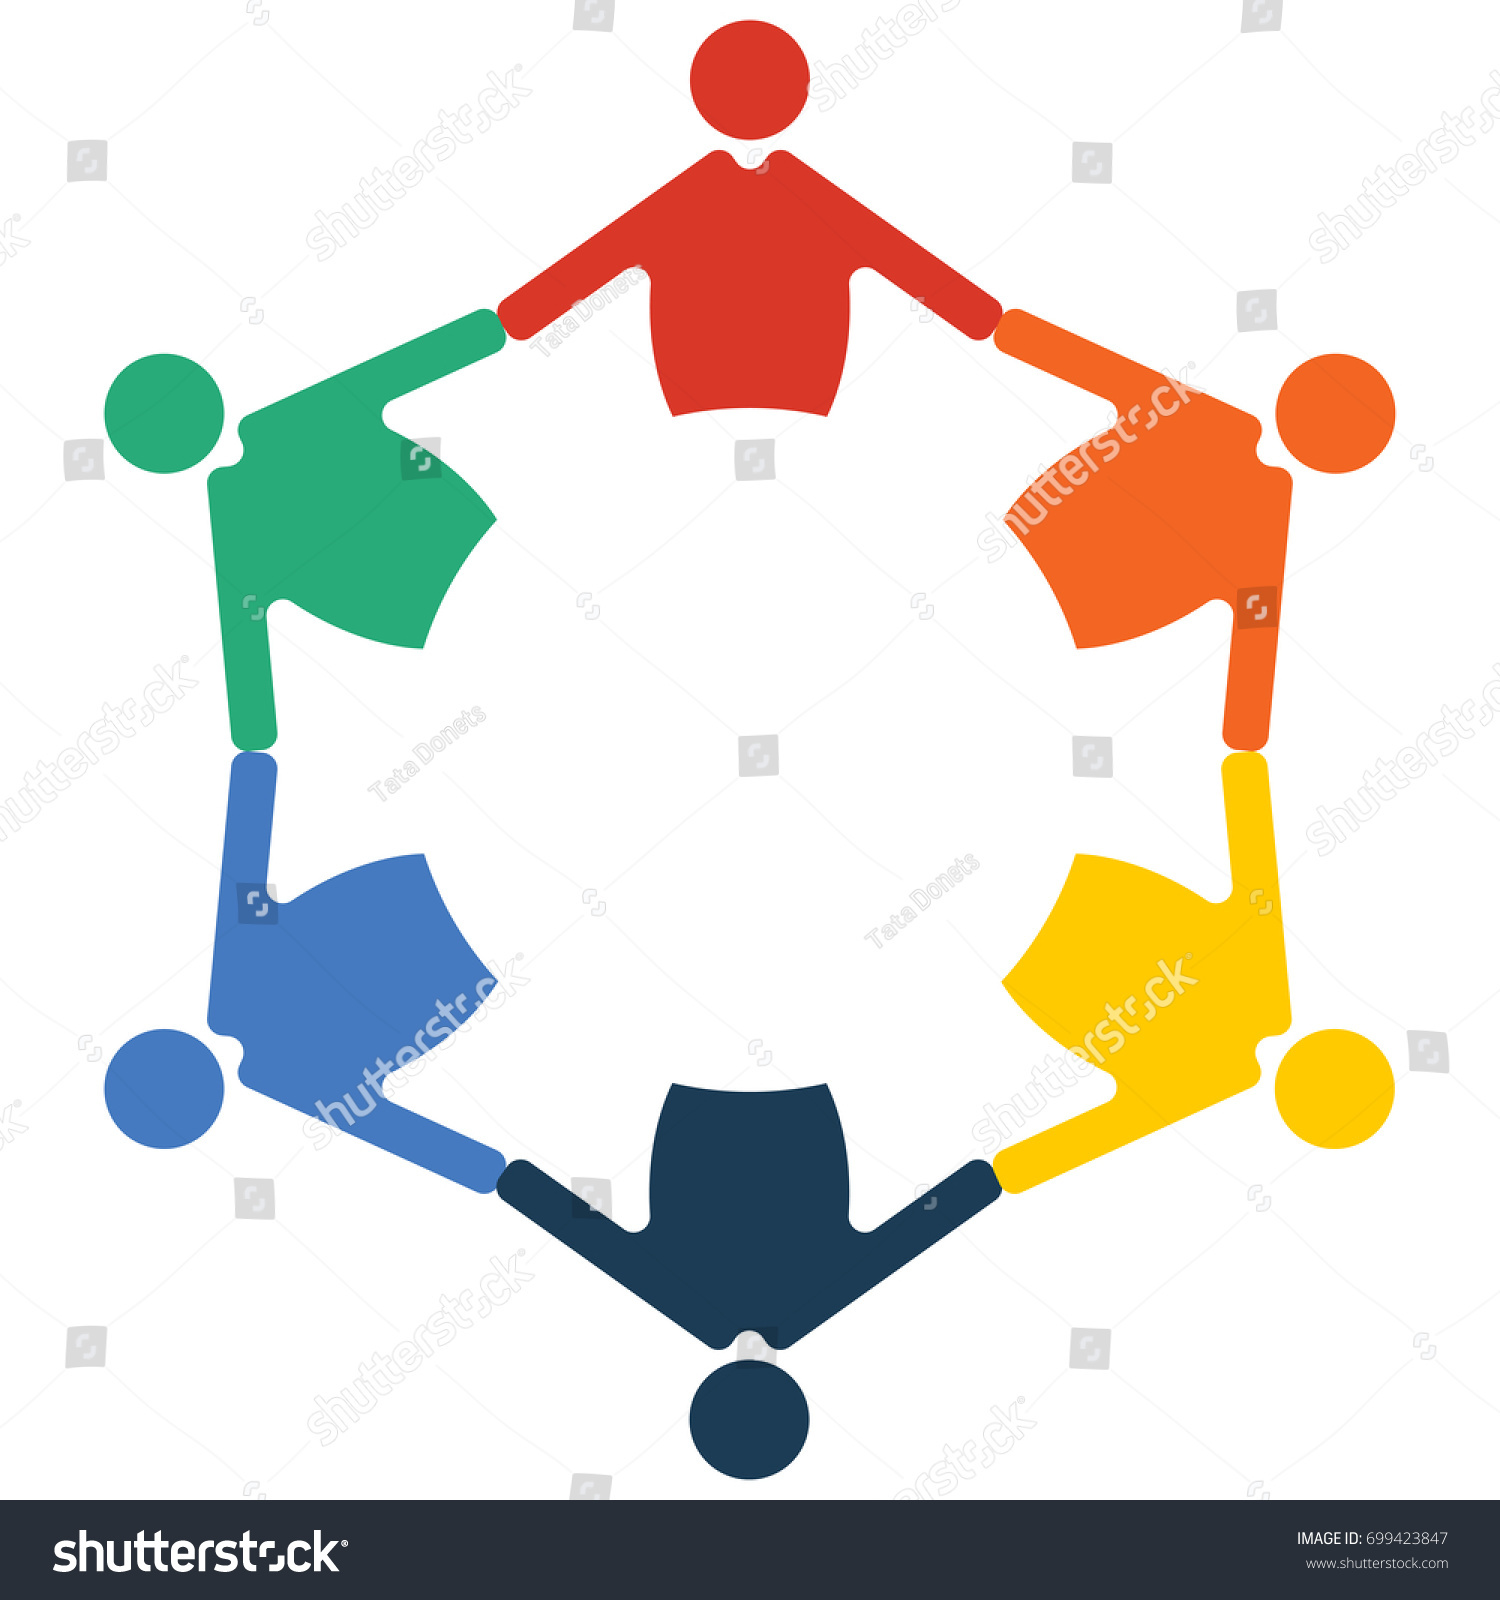 Family Reunion Diversity Group Community Round Stock Vector Royalty